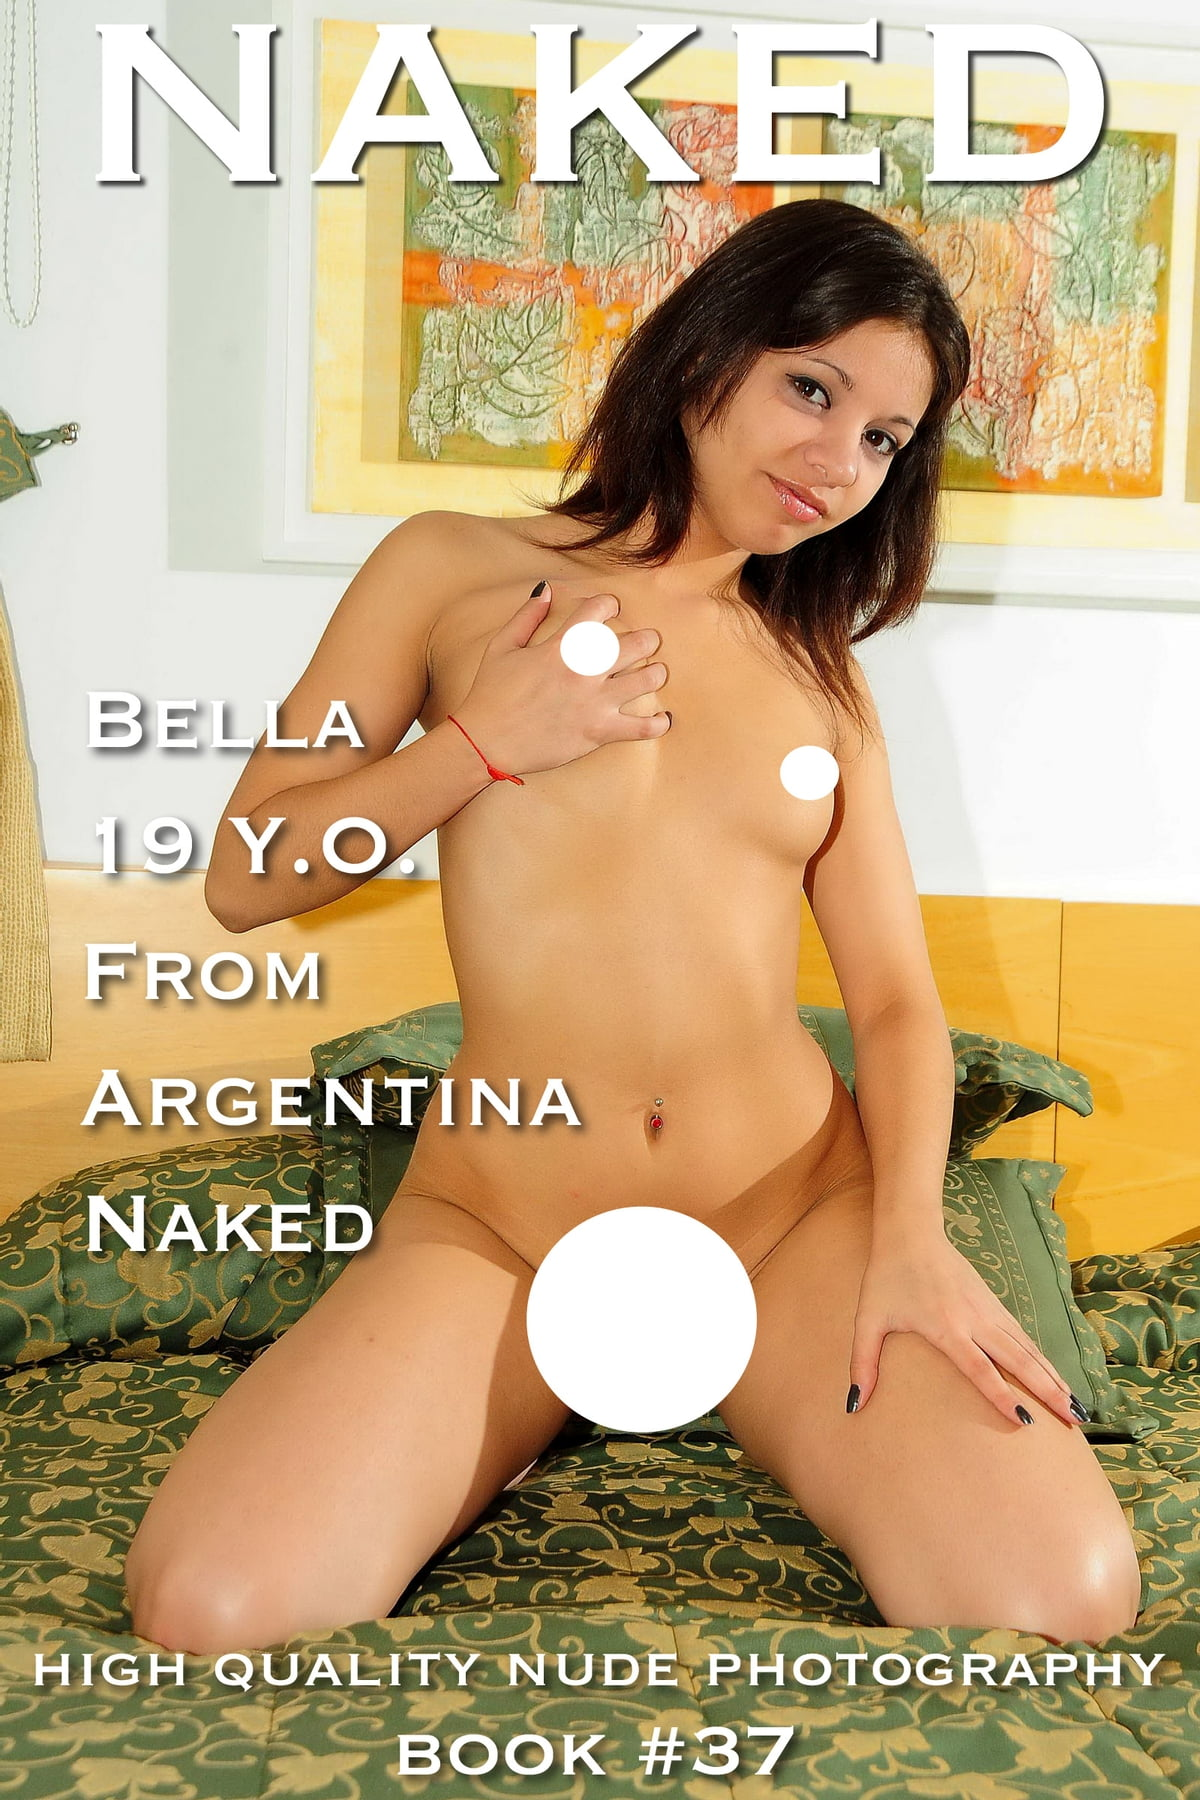 naked book #37, bella 19 yo from argentina naked ebooksylvia